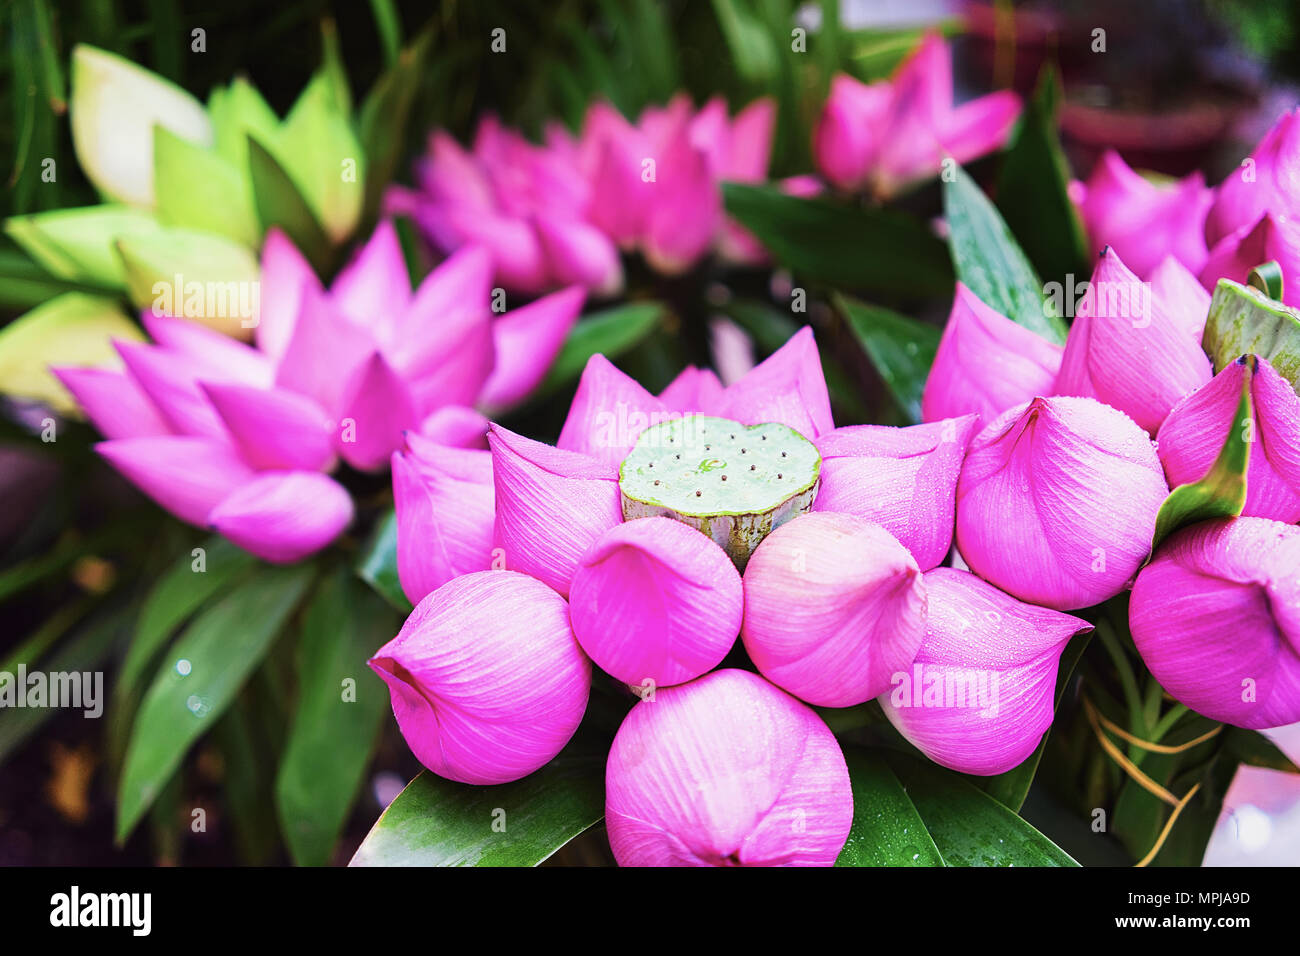 Bunch Of Lotus Flowers In Chi Minh City Vietnam Stock Photo